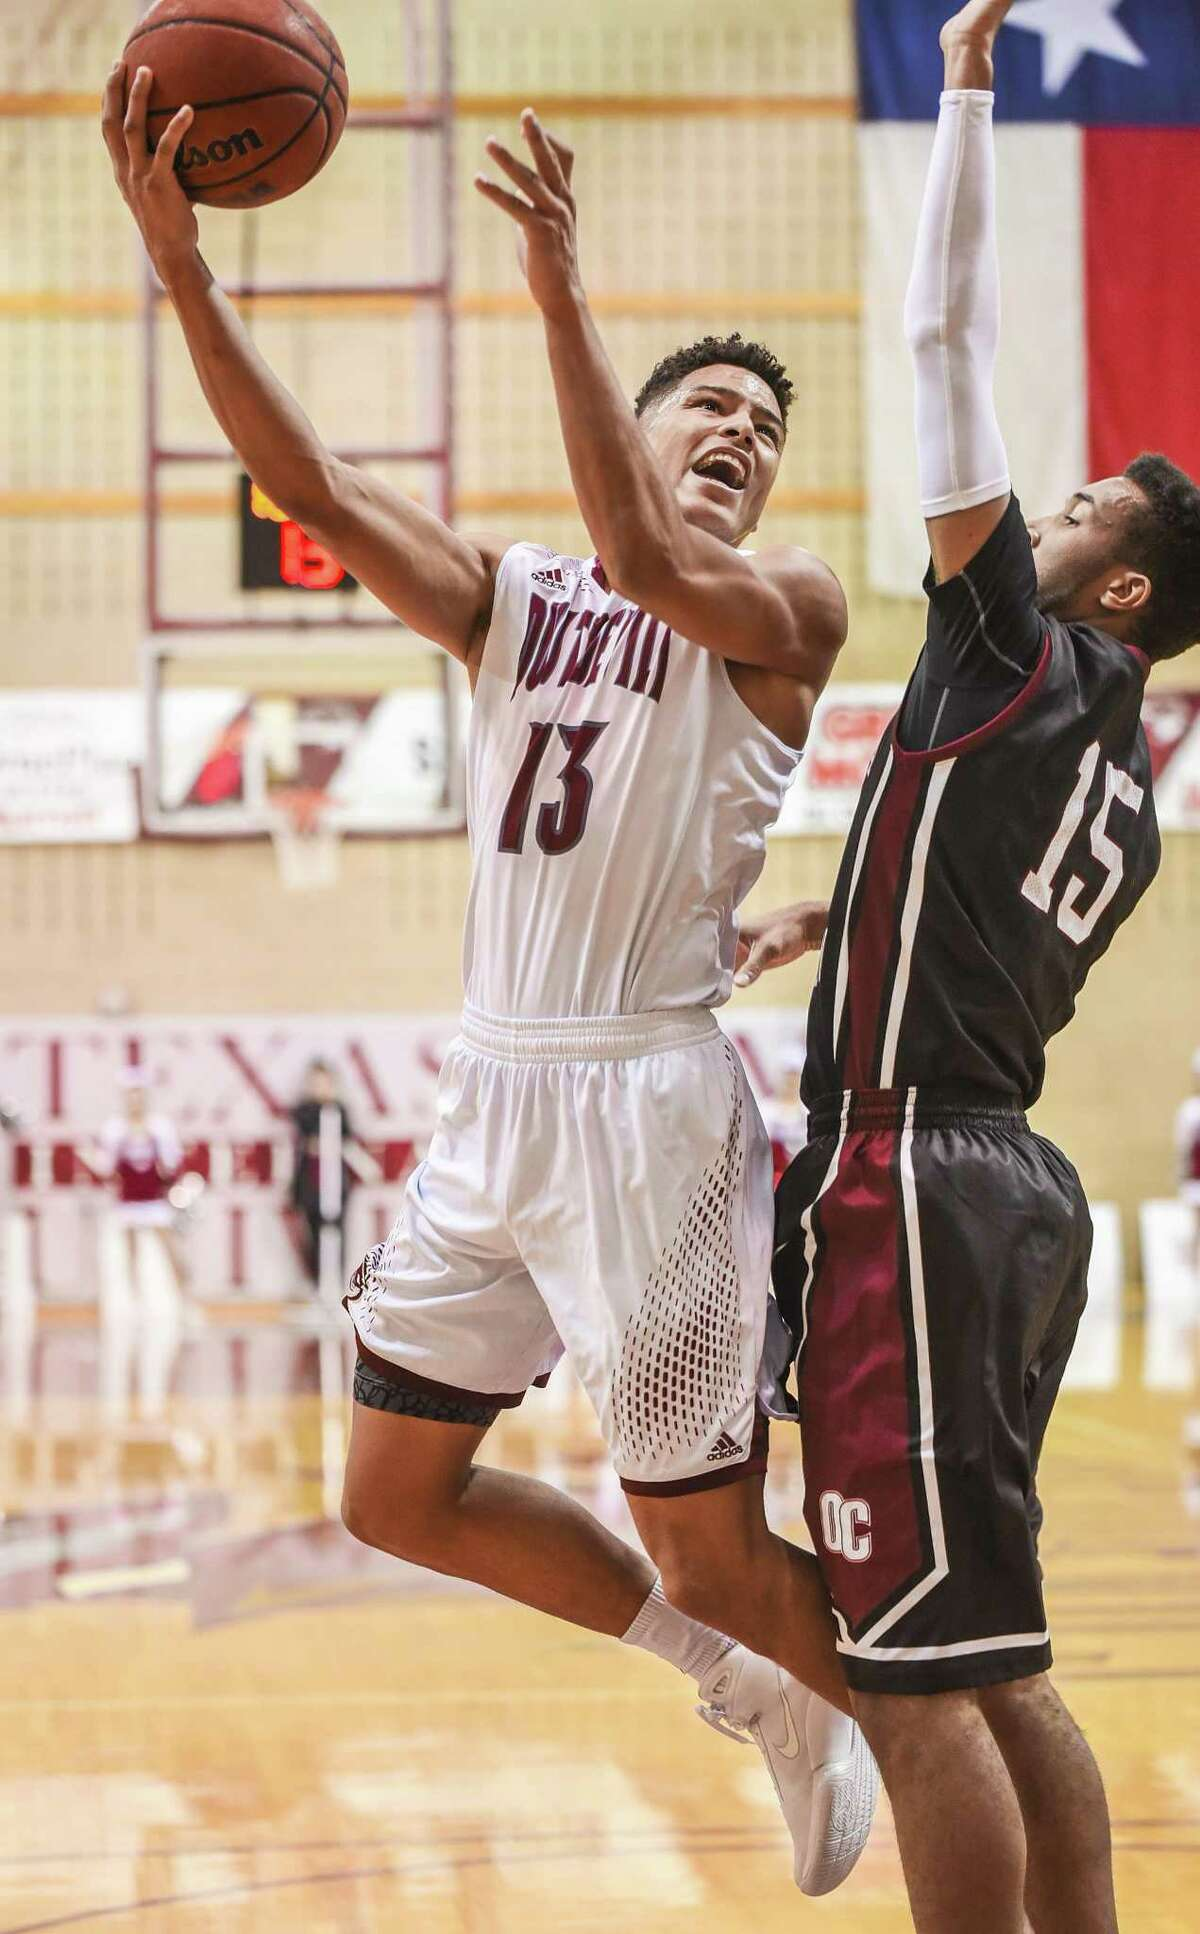 TAMIU leading scorer Xabier Gomez was held to two points in Thursday's loss and has been limited to seven total points the past two games.